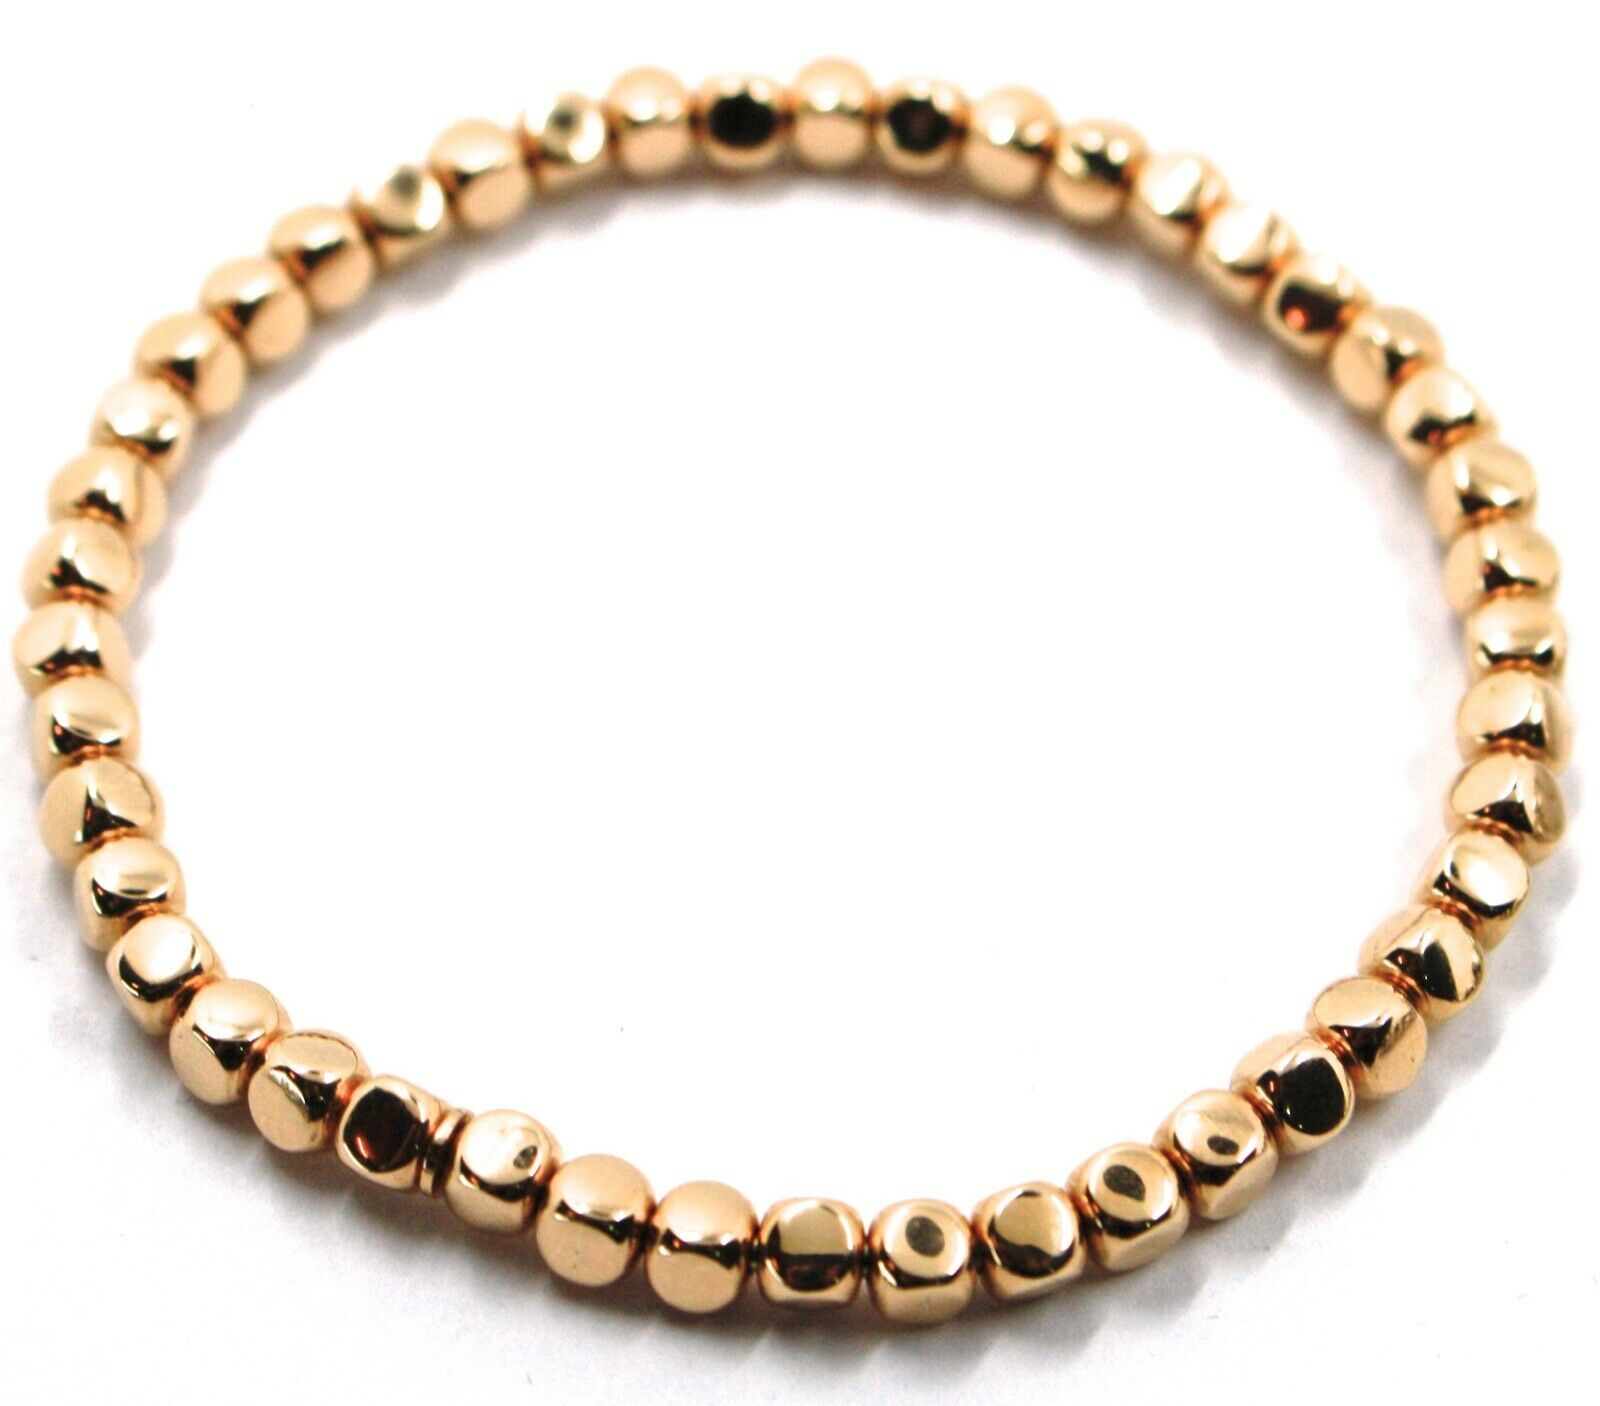 "SOLID 18K ROSE GOLD ELASTIC BRACELET, CUBES DIAMETER 4 MM 0.16"", MADE IN ITALY"